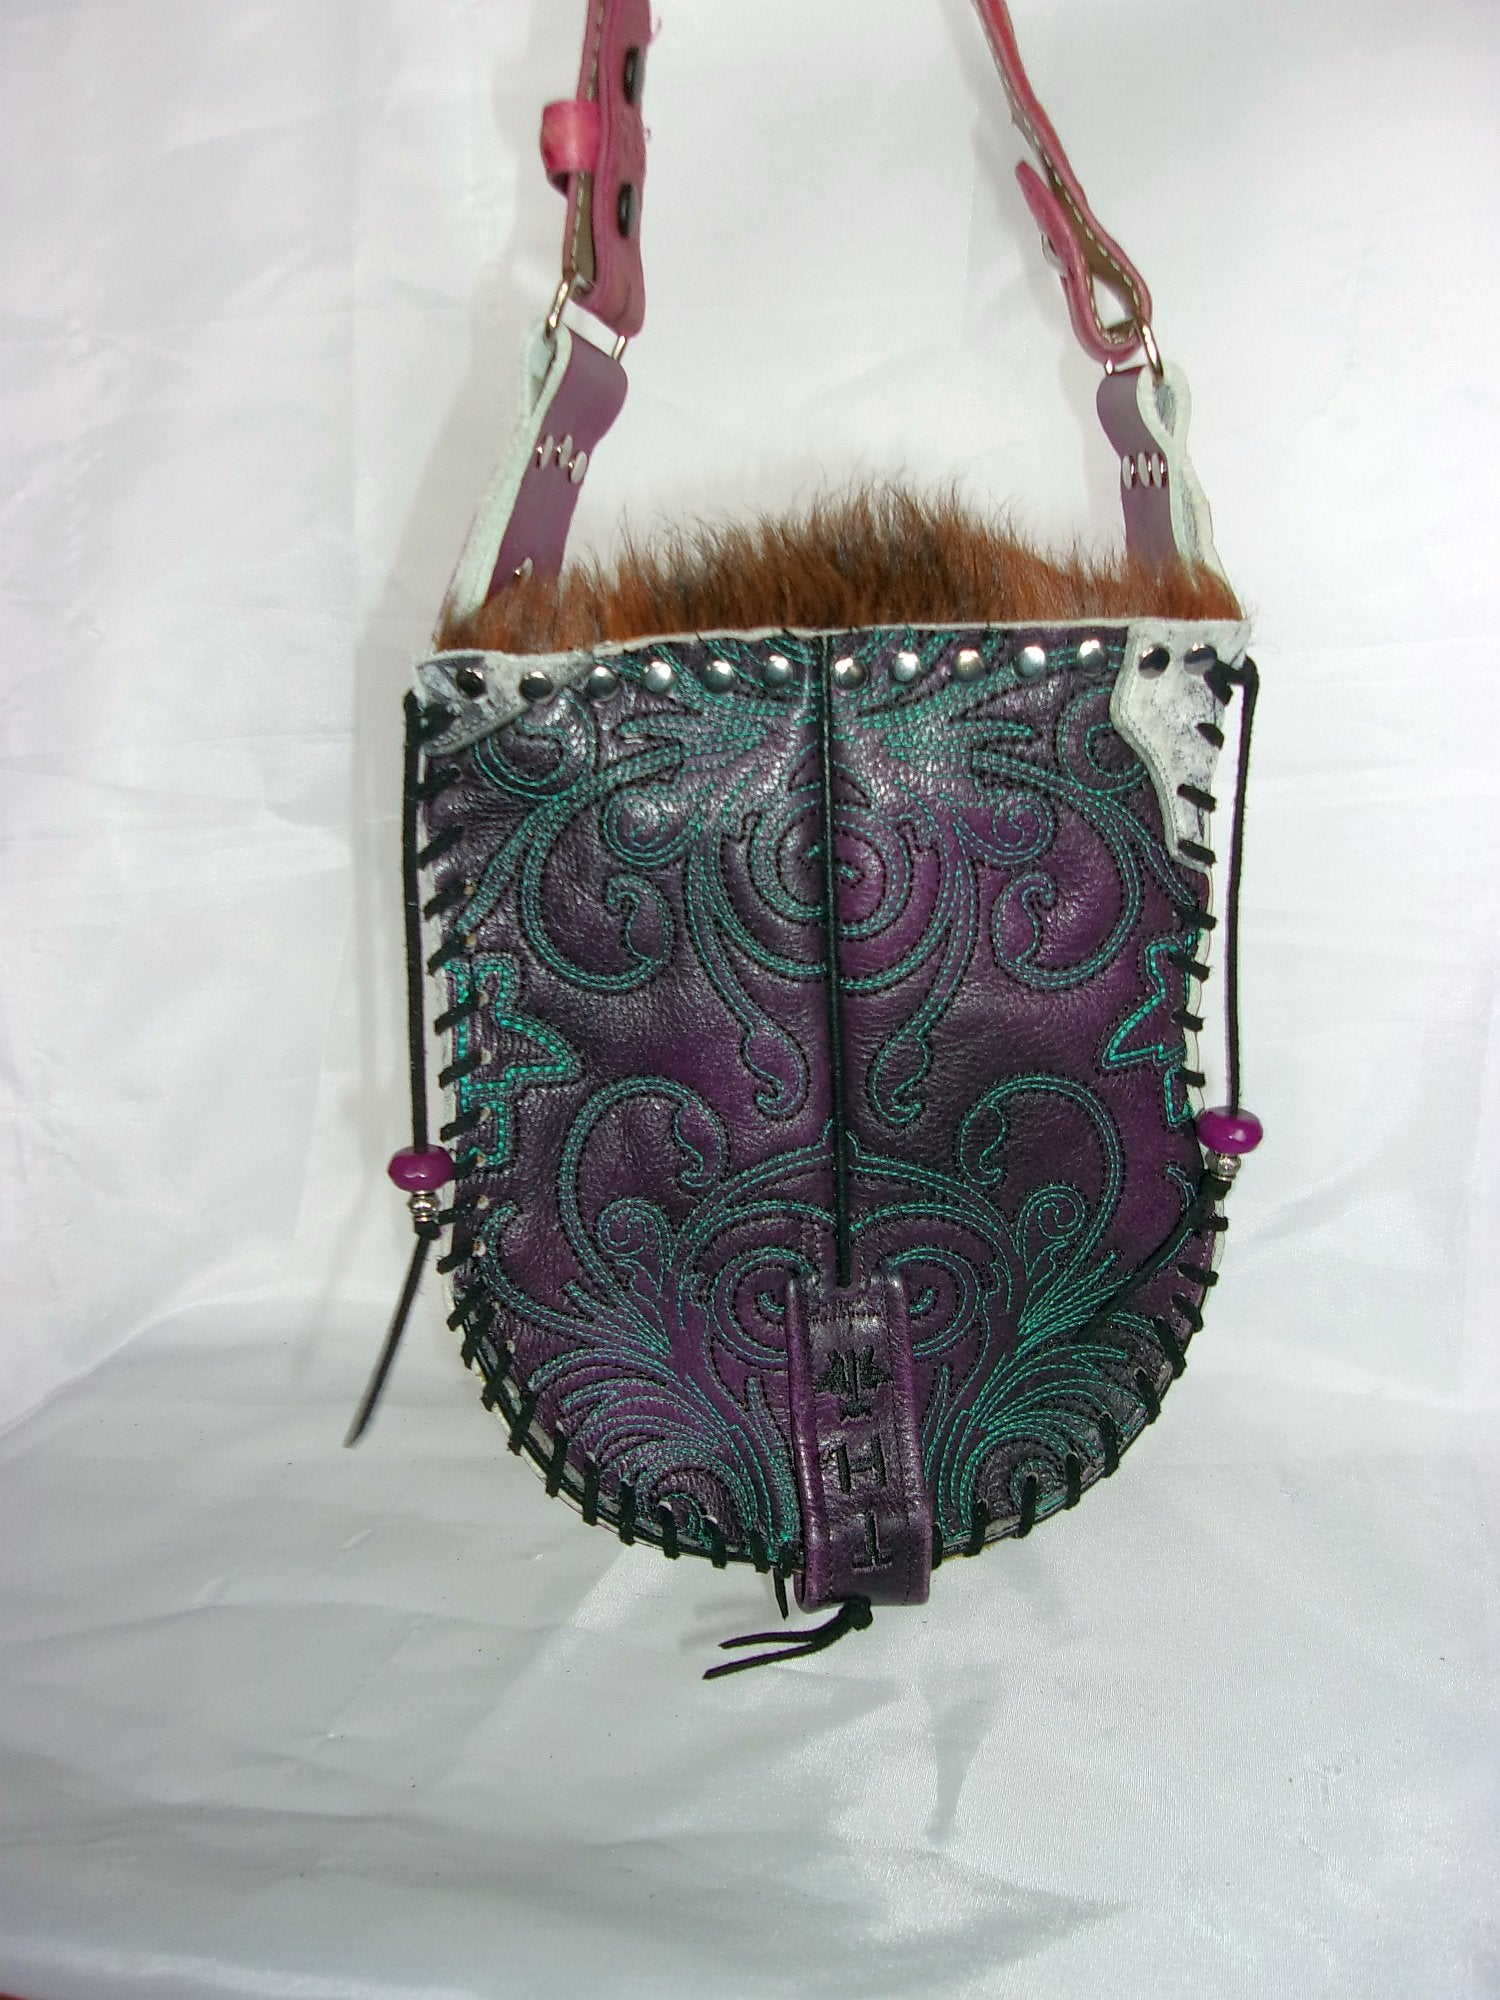 Hair-on-Hide Hand-Painted Flap Top Bag SB10 - Cowboy Boot Purses by Chris Thompson for Distinctive Western Fashion